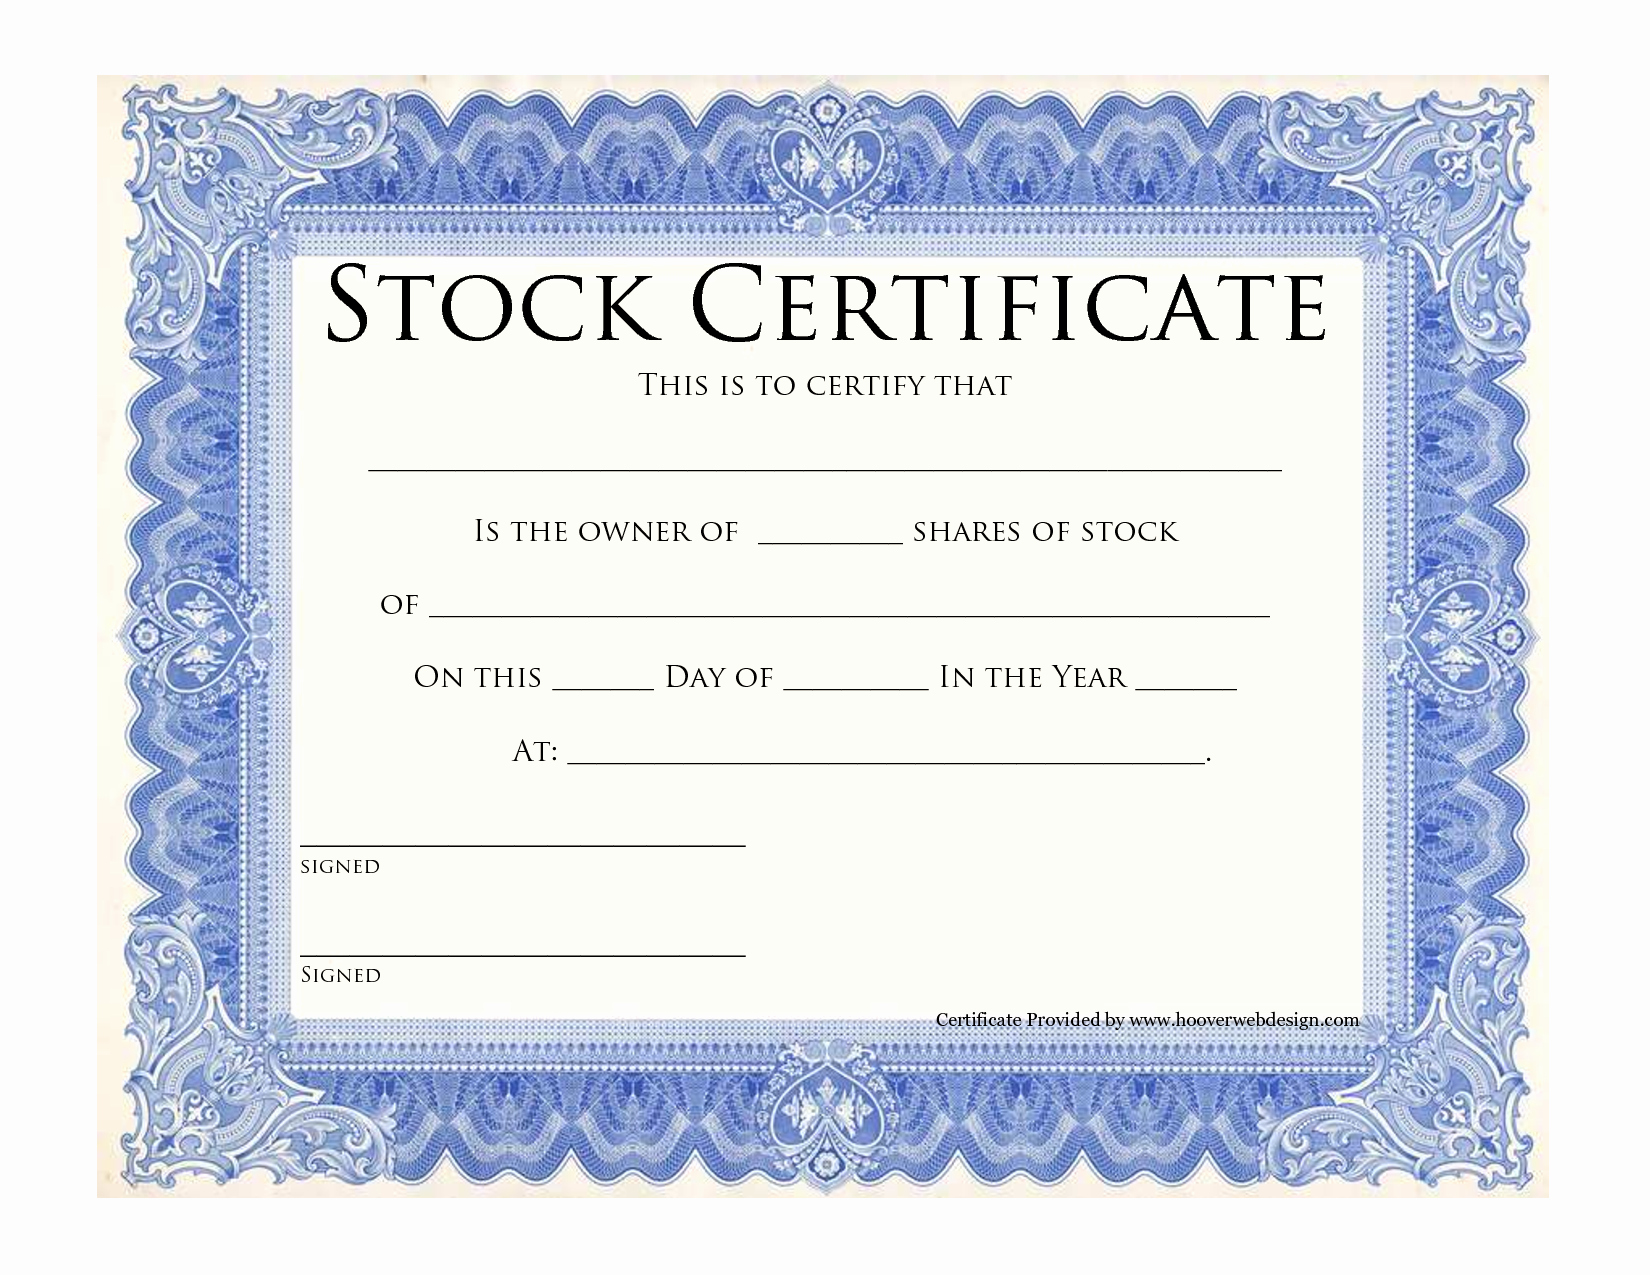 Stock Certificate Template Microsoft Word Unique Stock Certificate Template Microsoft Word